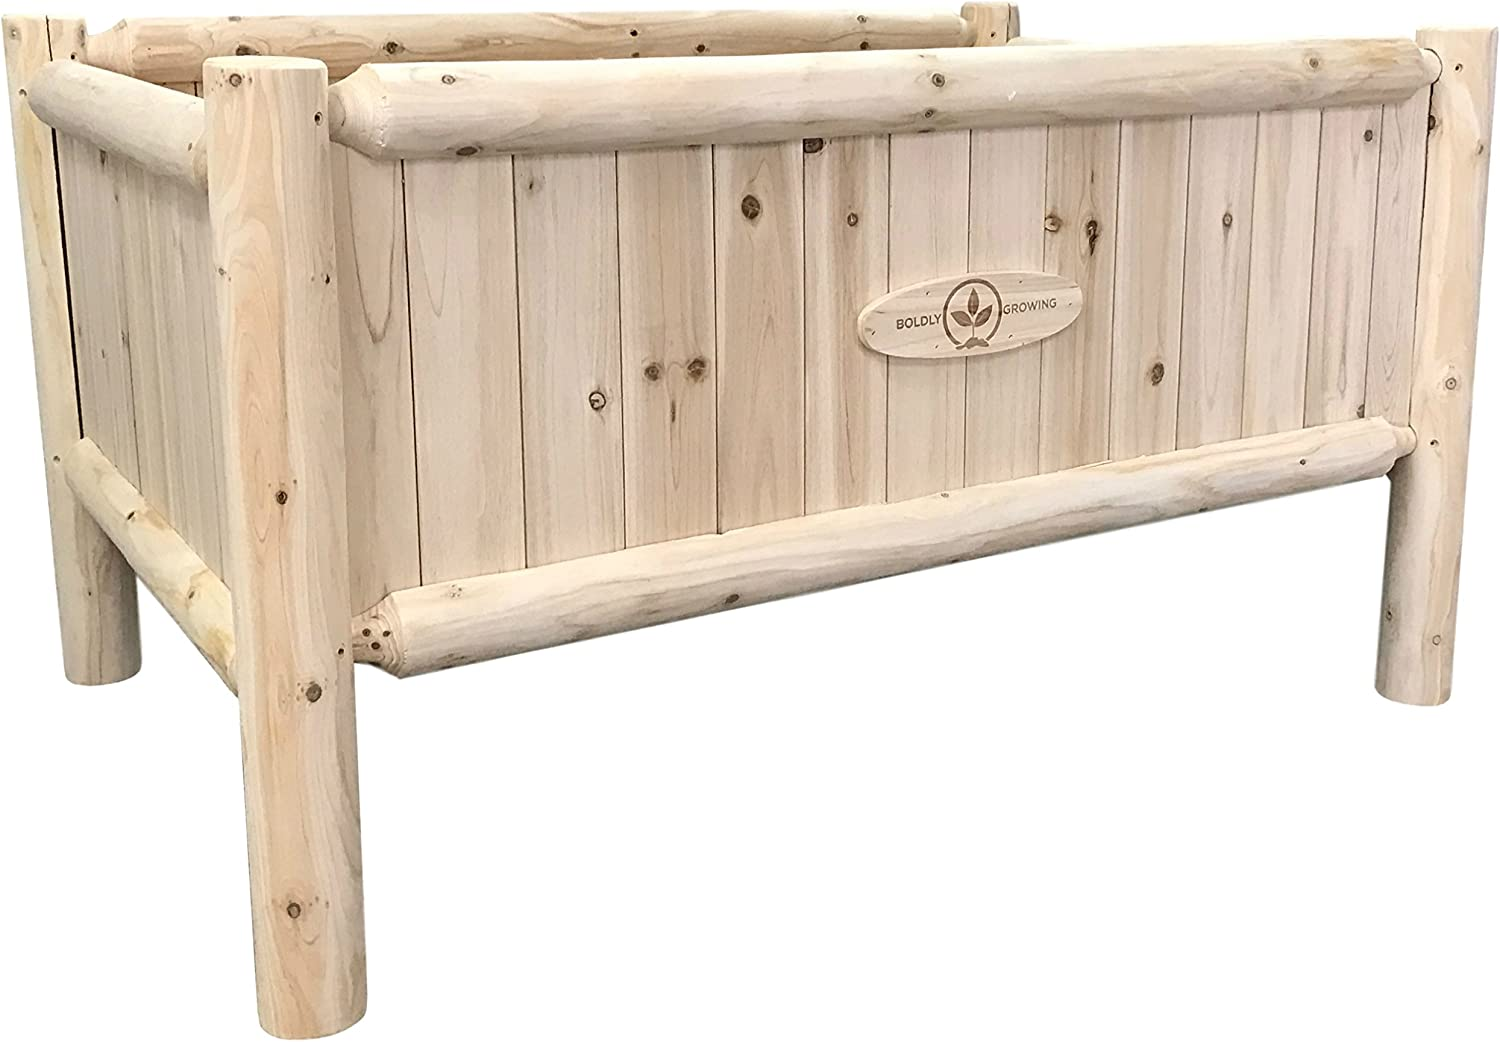 Wooden Raised Planter Box with Legs - Elevated Outdoor Patio Cedar Garden Bed Kit to Grow Vegetables - Unmatched Strength Lasts Years, Natural Rot-Resistant Wood - Boldly Growing (Heavy Duty Short)